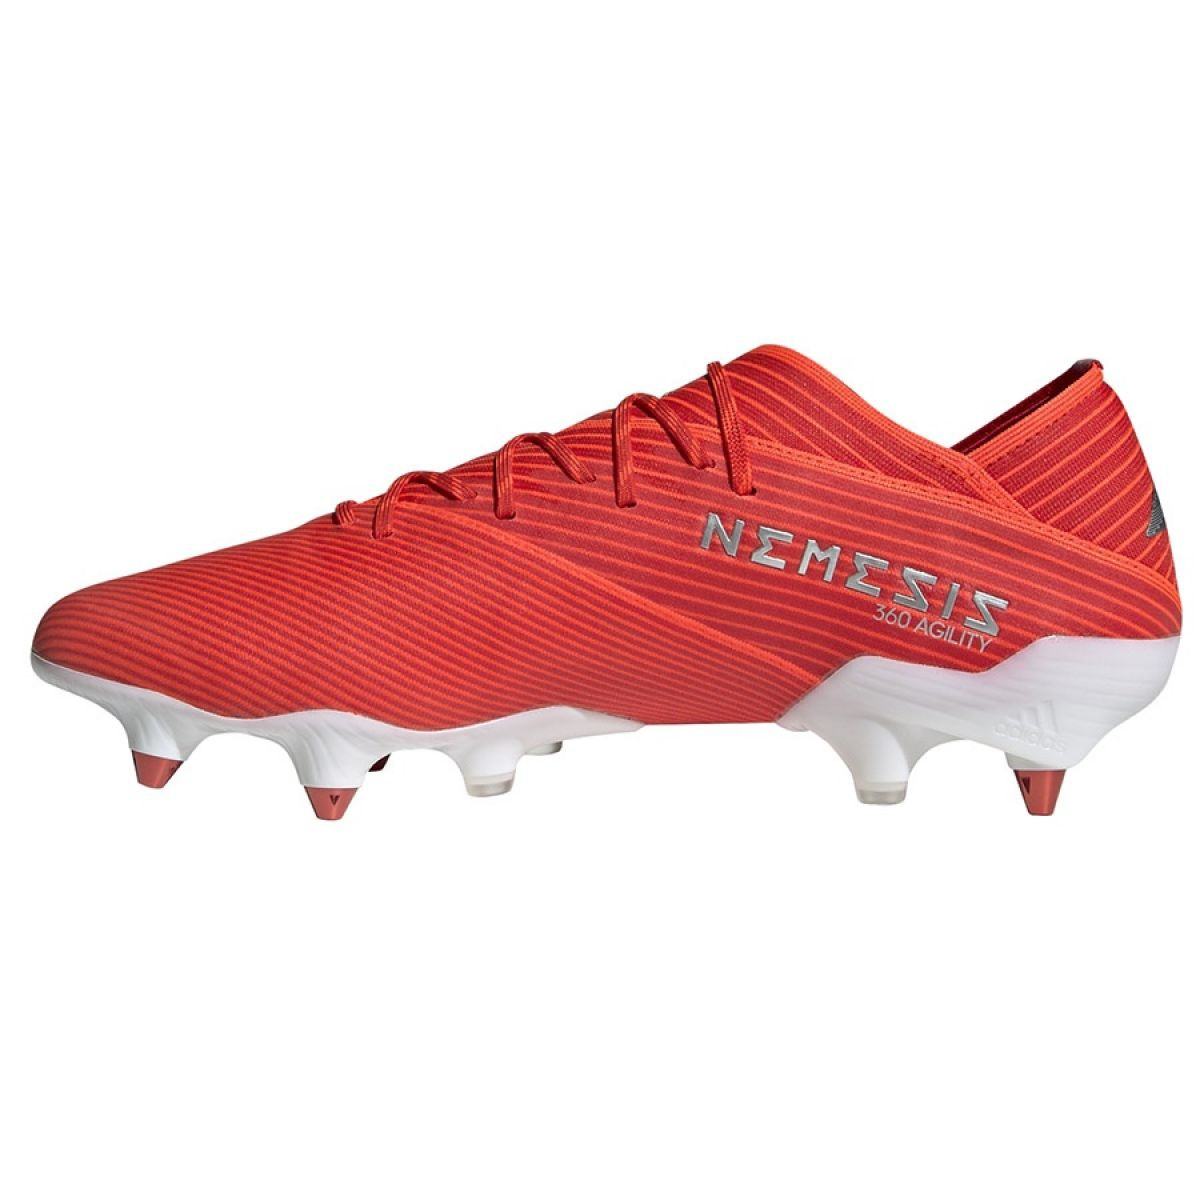 1 Sg M red about Football Details F99855 red boots Nemeziz 19 adidas xBdCtsrhQ